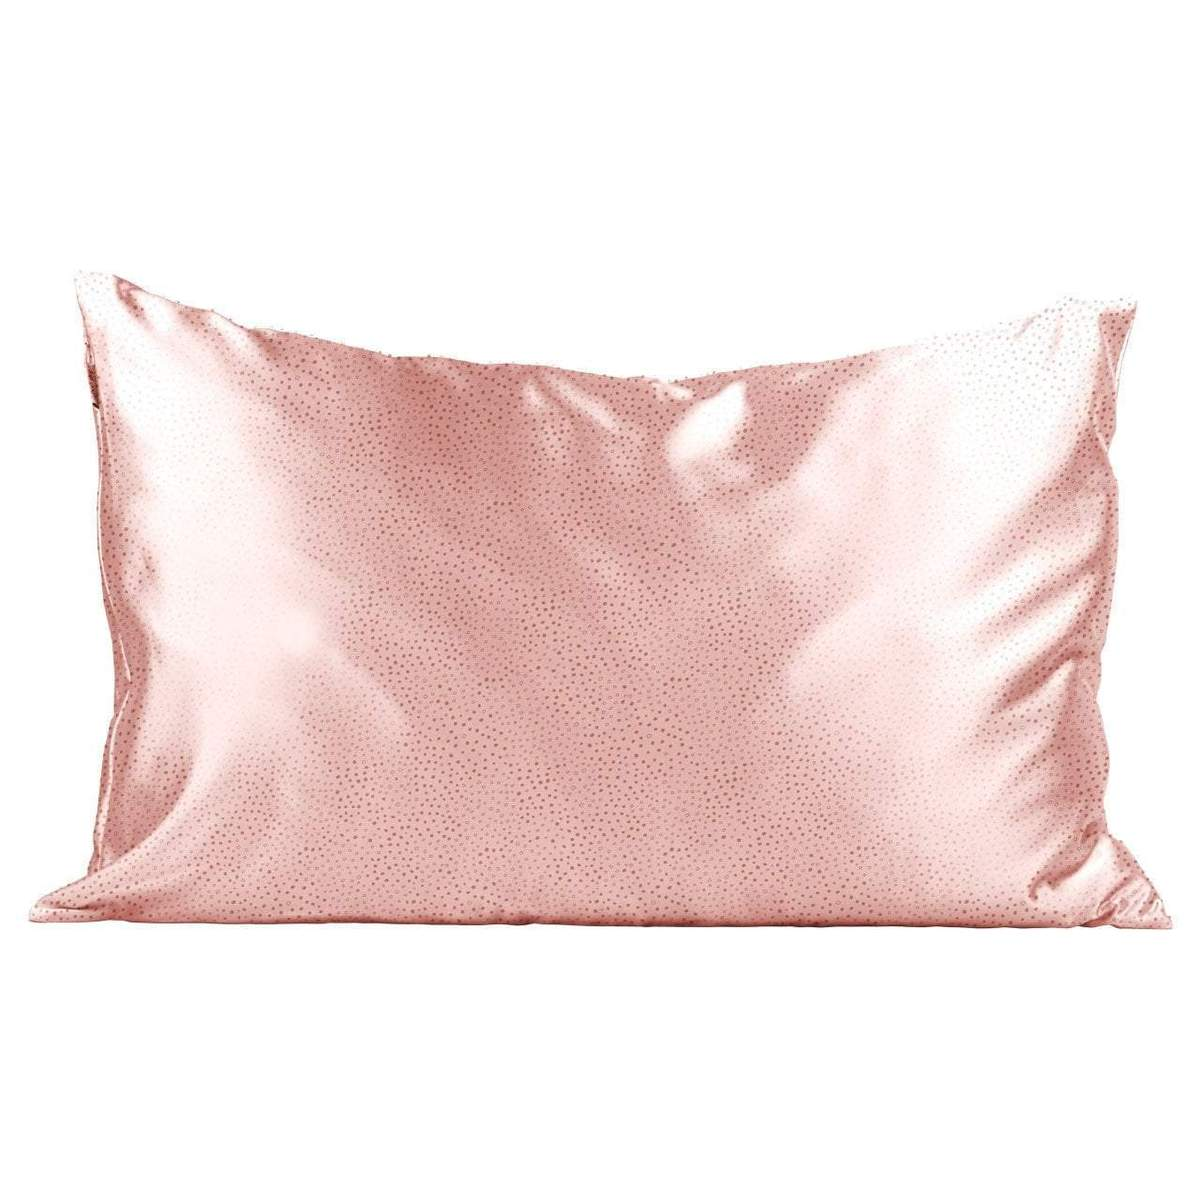 Satin Pillowcase by Kitsch